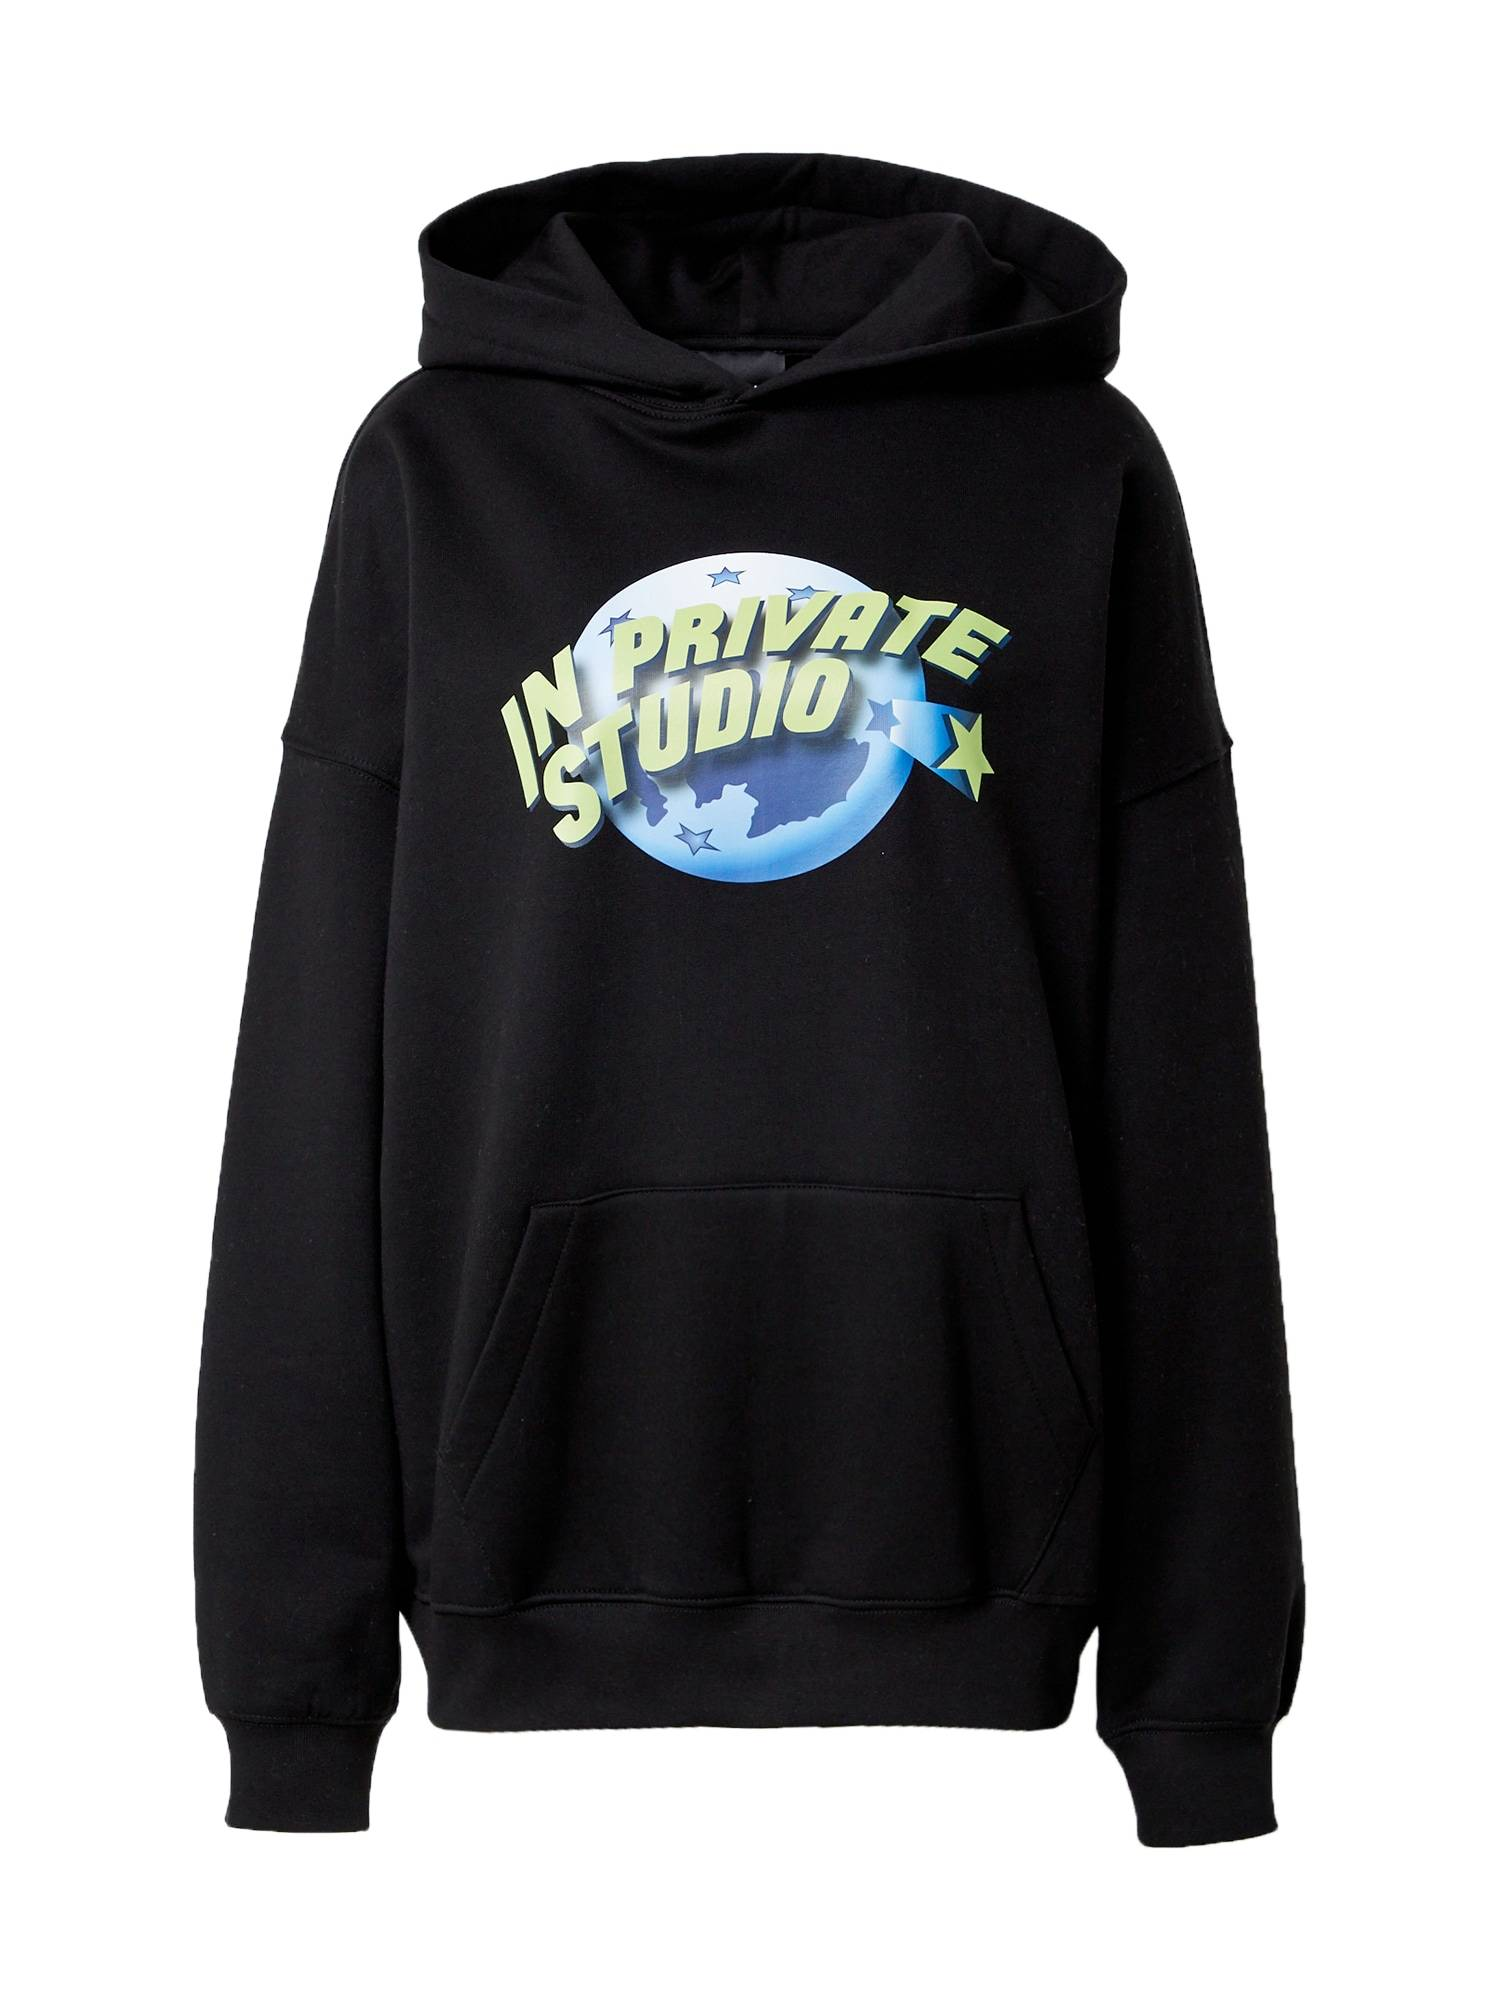 IN PRIVATE Studio Sweat-shirt  - Noir - Taille: XL - female